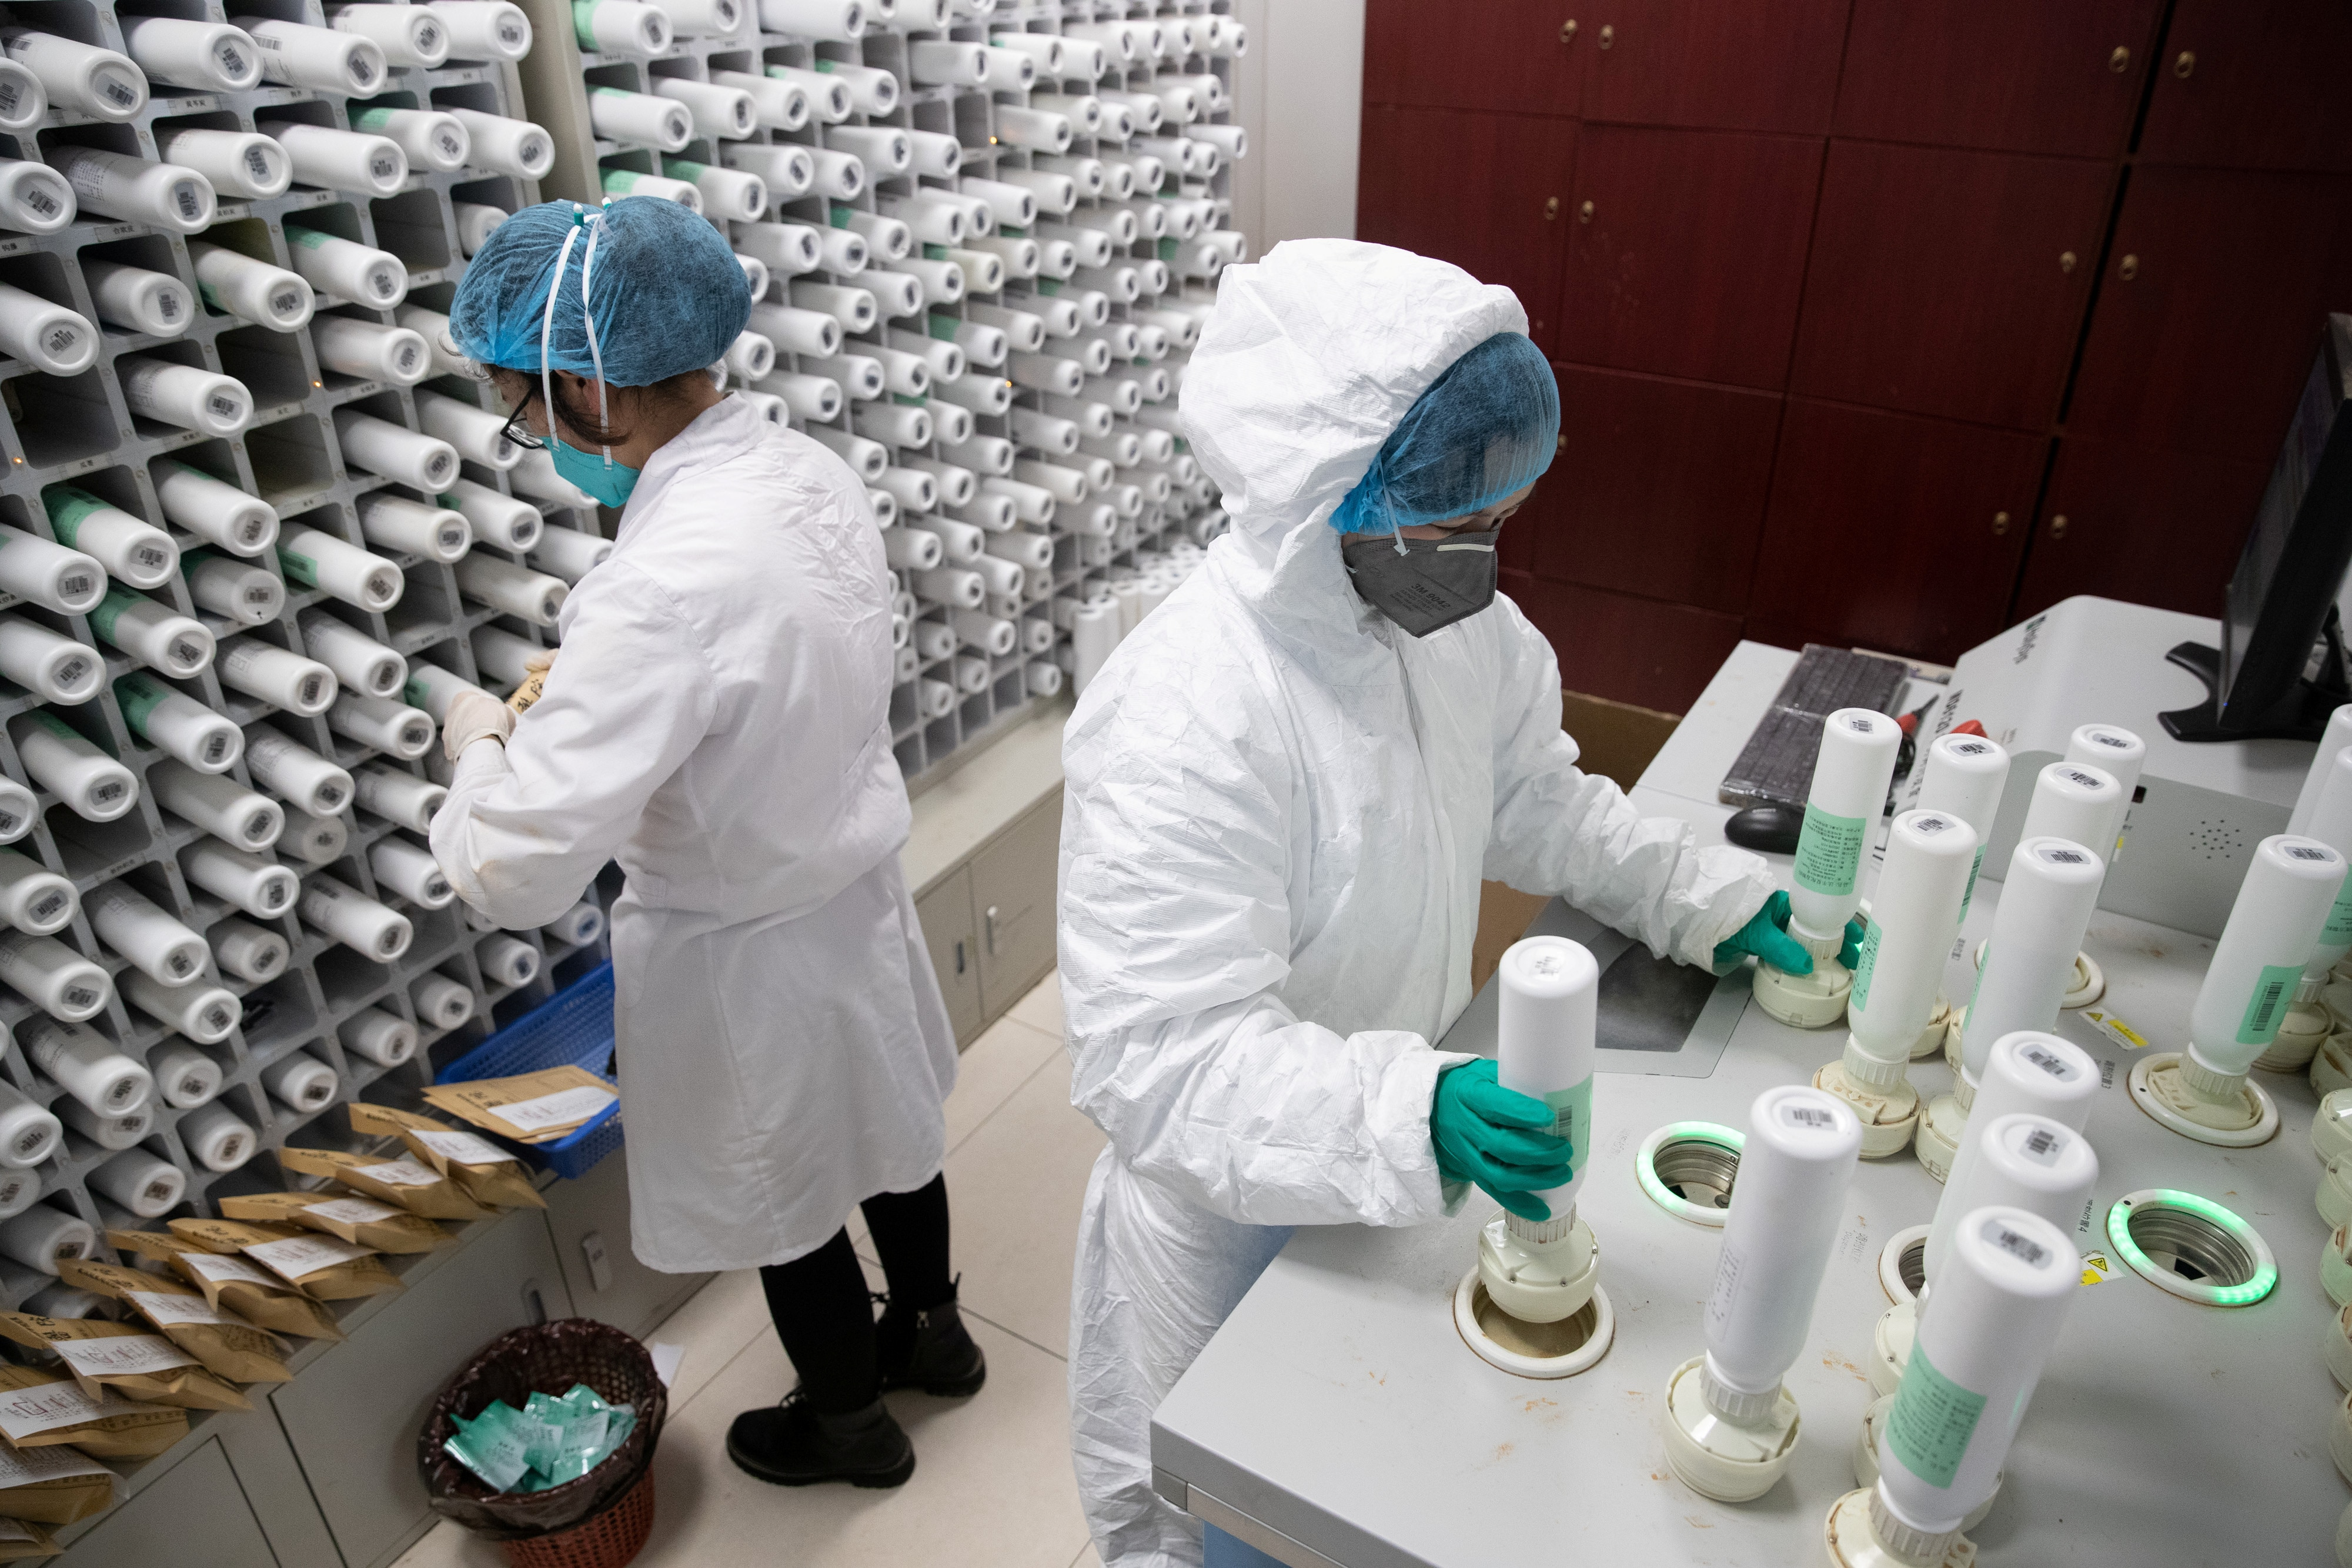 China Coronavirus Vaccine Could Be Ready For Emergency Use In April Voice Of America English